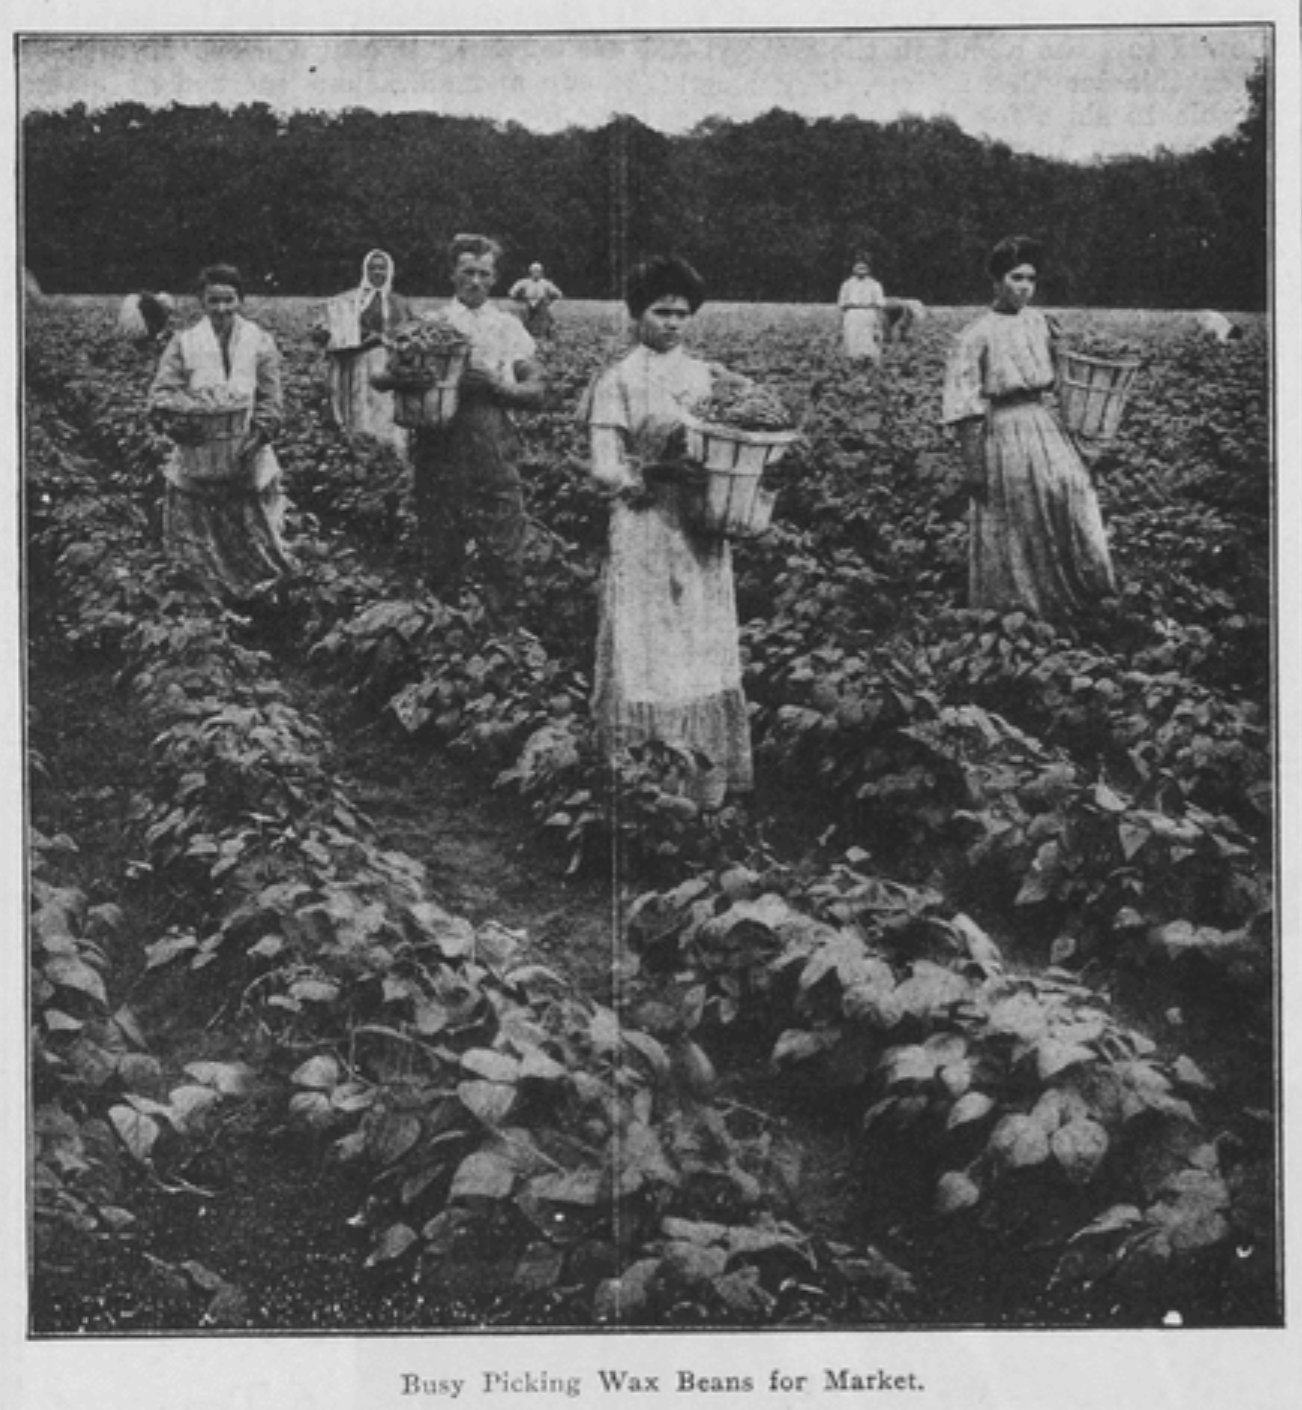 """Busy Picking Wax Beans for Market,"" Western Home Monthly, May 1914, 67."